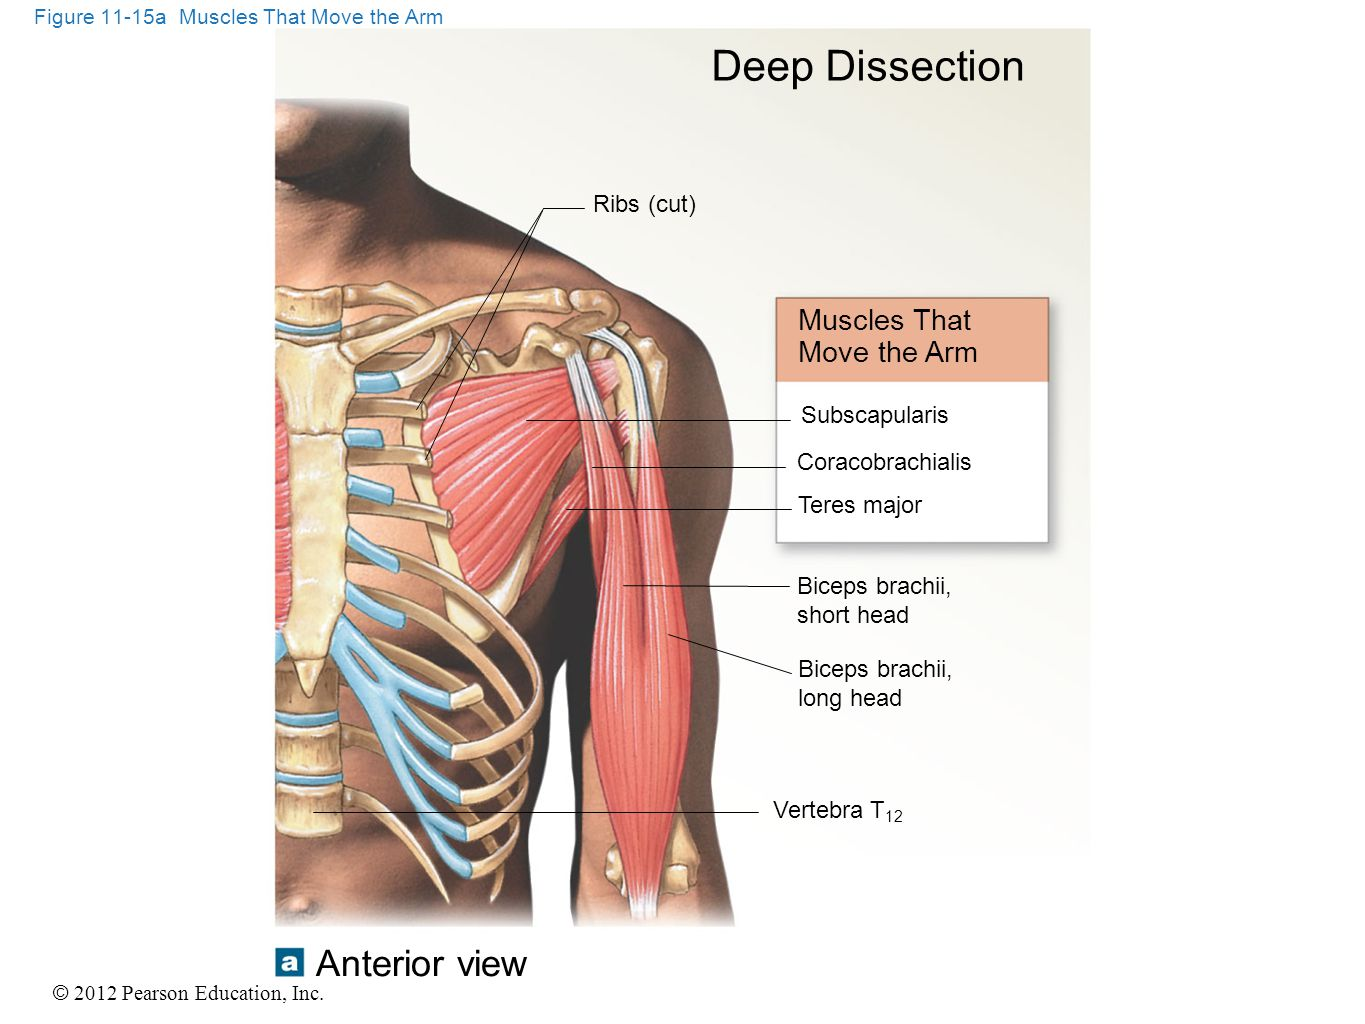 Figure 11-15a Muscles That Move the Arm